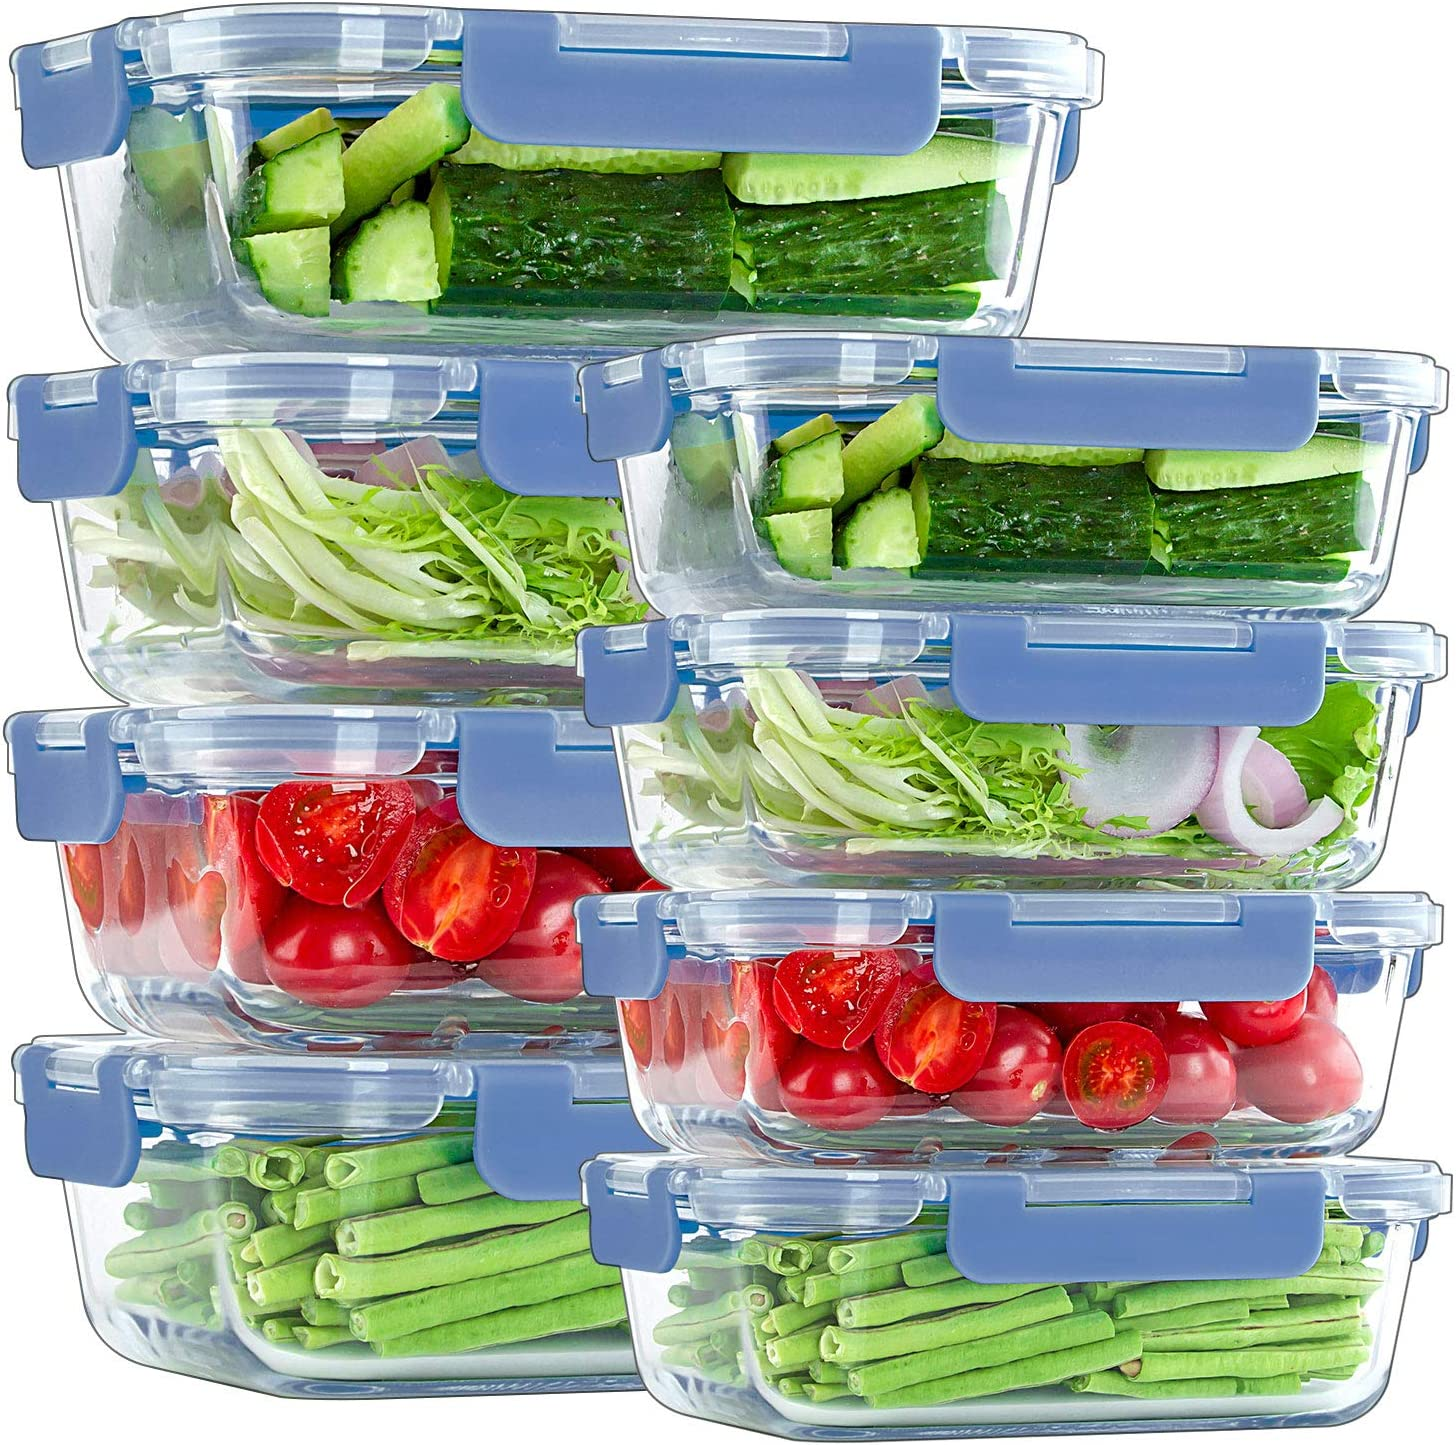 8 Pack Glass Meal Prep Containers, [4 Pack 34 Oz + 4 Pack 12 Oz] Airtight Glass Storage Containers with Lids, BPA Free Glass Bento Boxes for Lunch